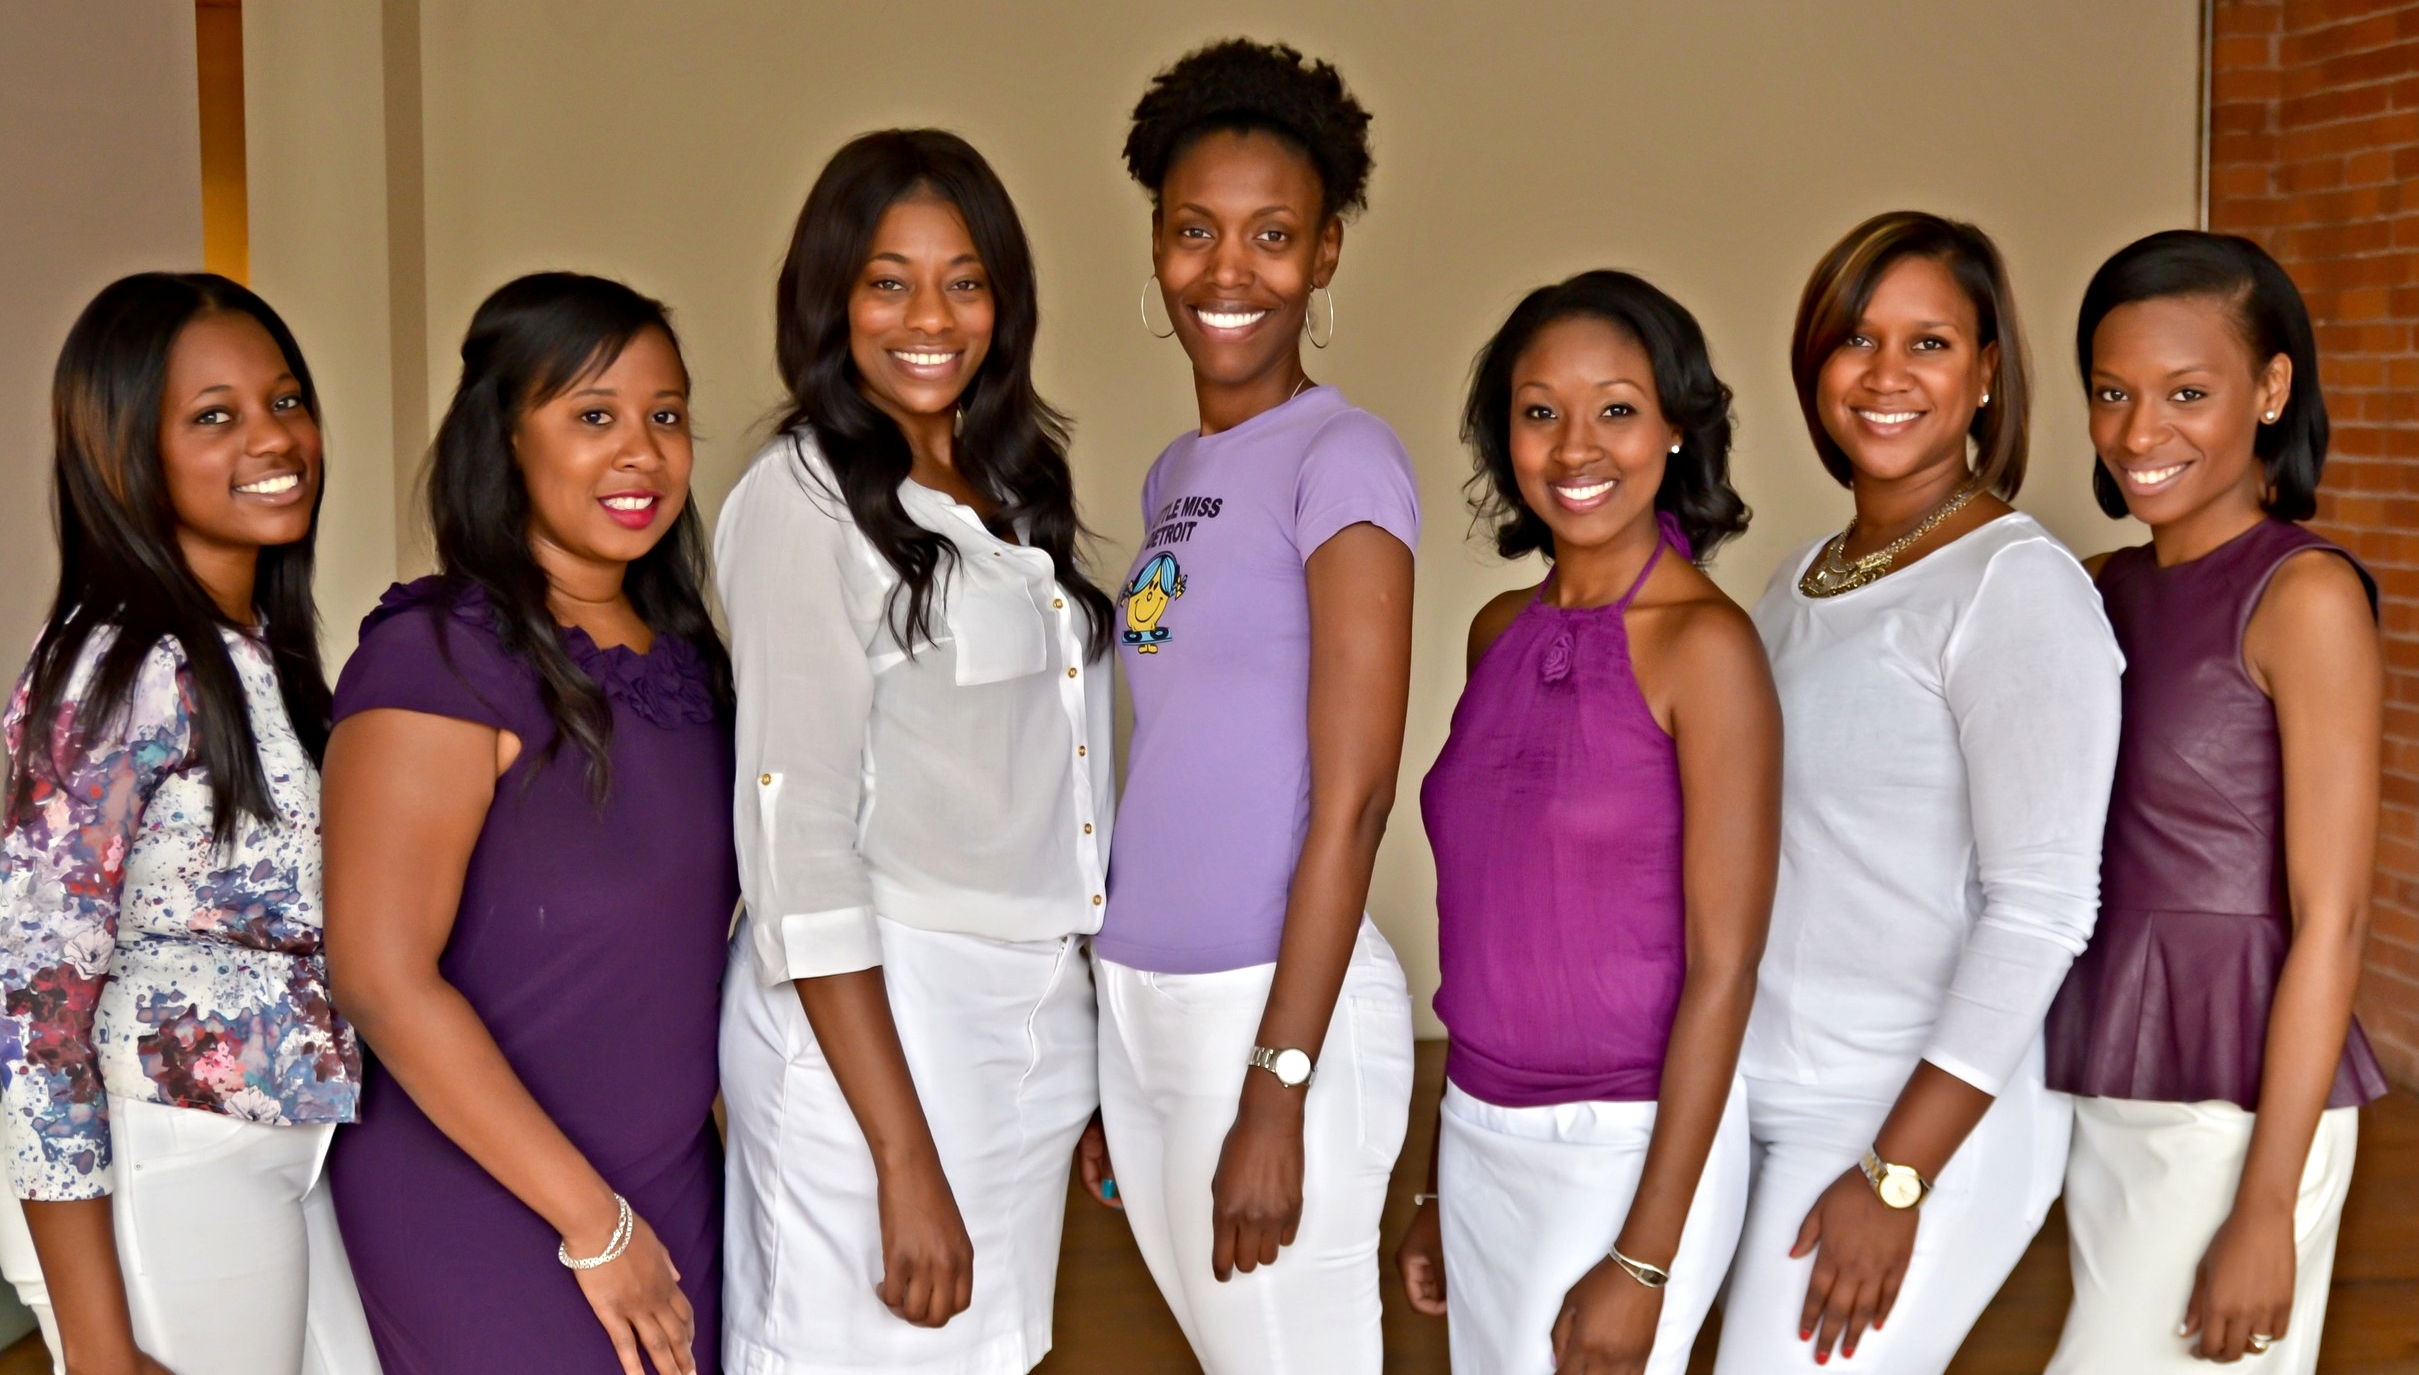 From left to right:Tonie Stovall - Founder, Jackie Palmer, Rana Stovall, Brittany Sanders, Melnevia Whaley, Dana Sellers, Whitney Lewis - Founder, Lindsie Boykin - Secretary (not pictured)